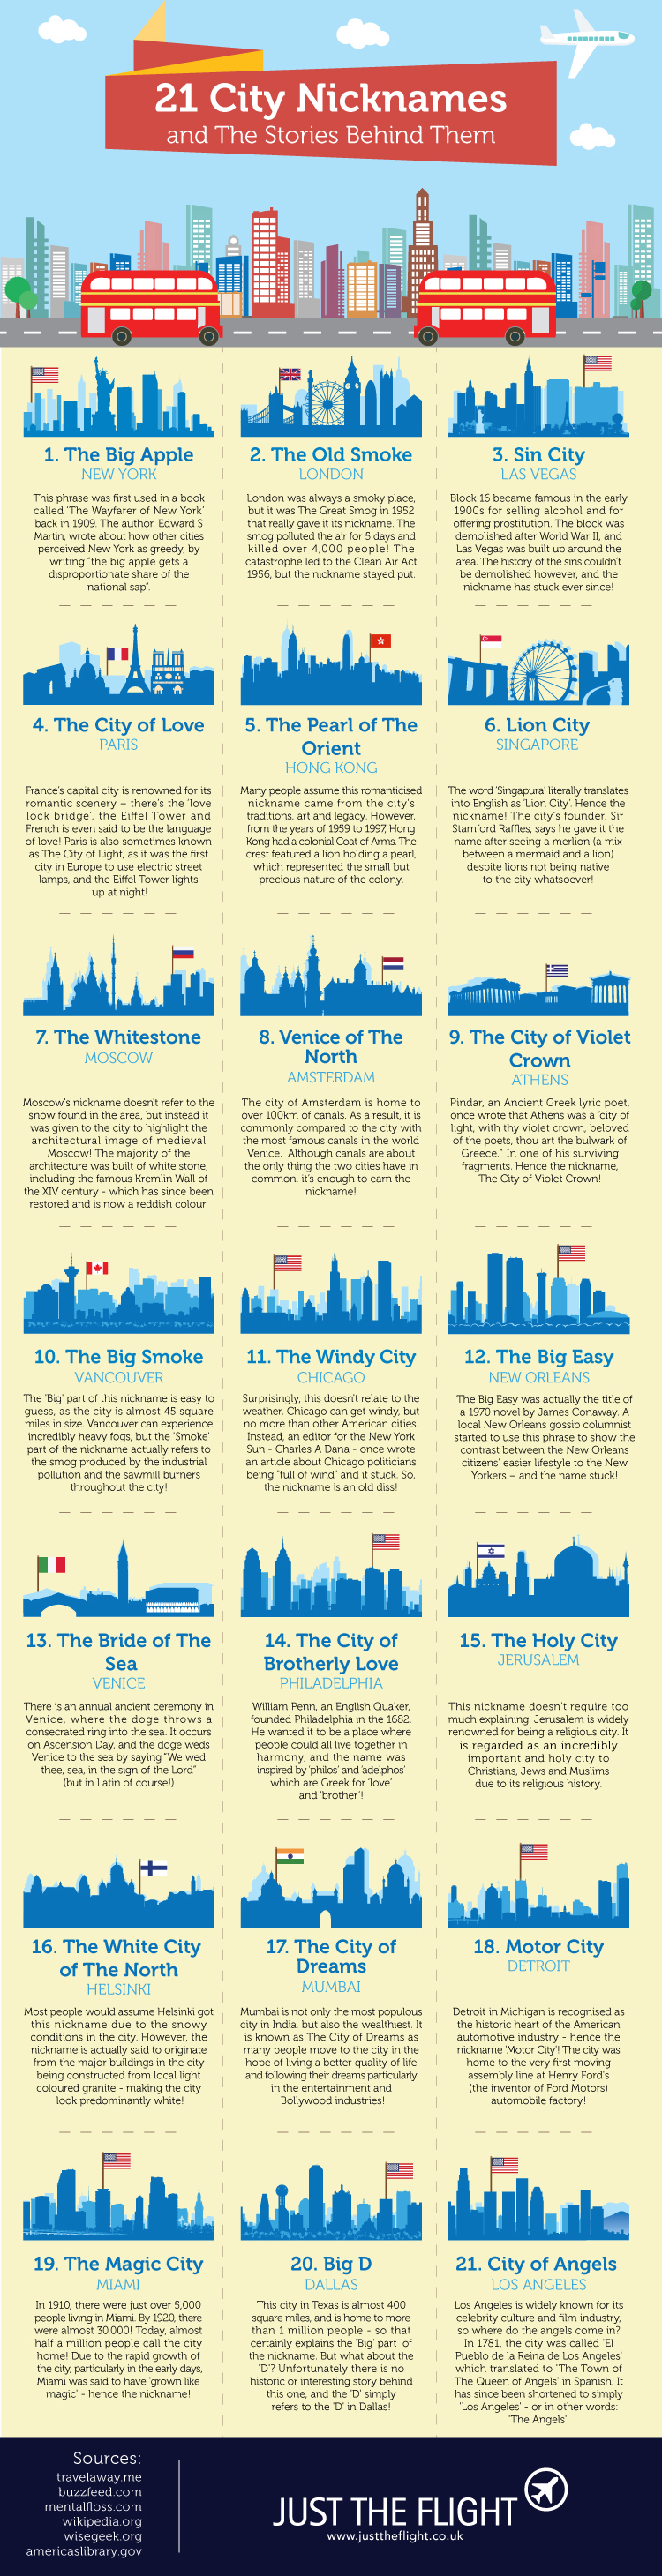 City Nicknames and the stories behind them